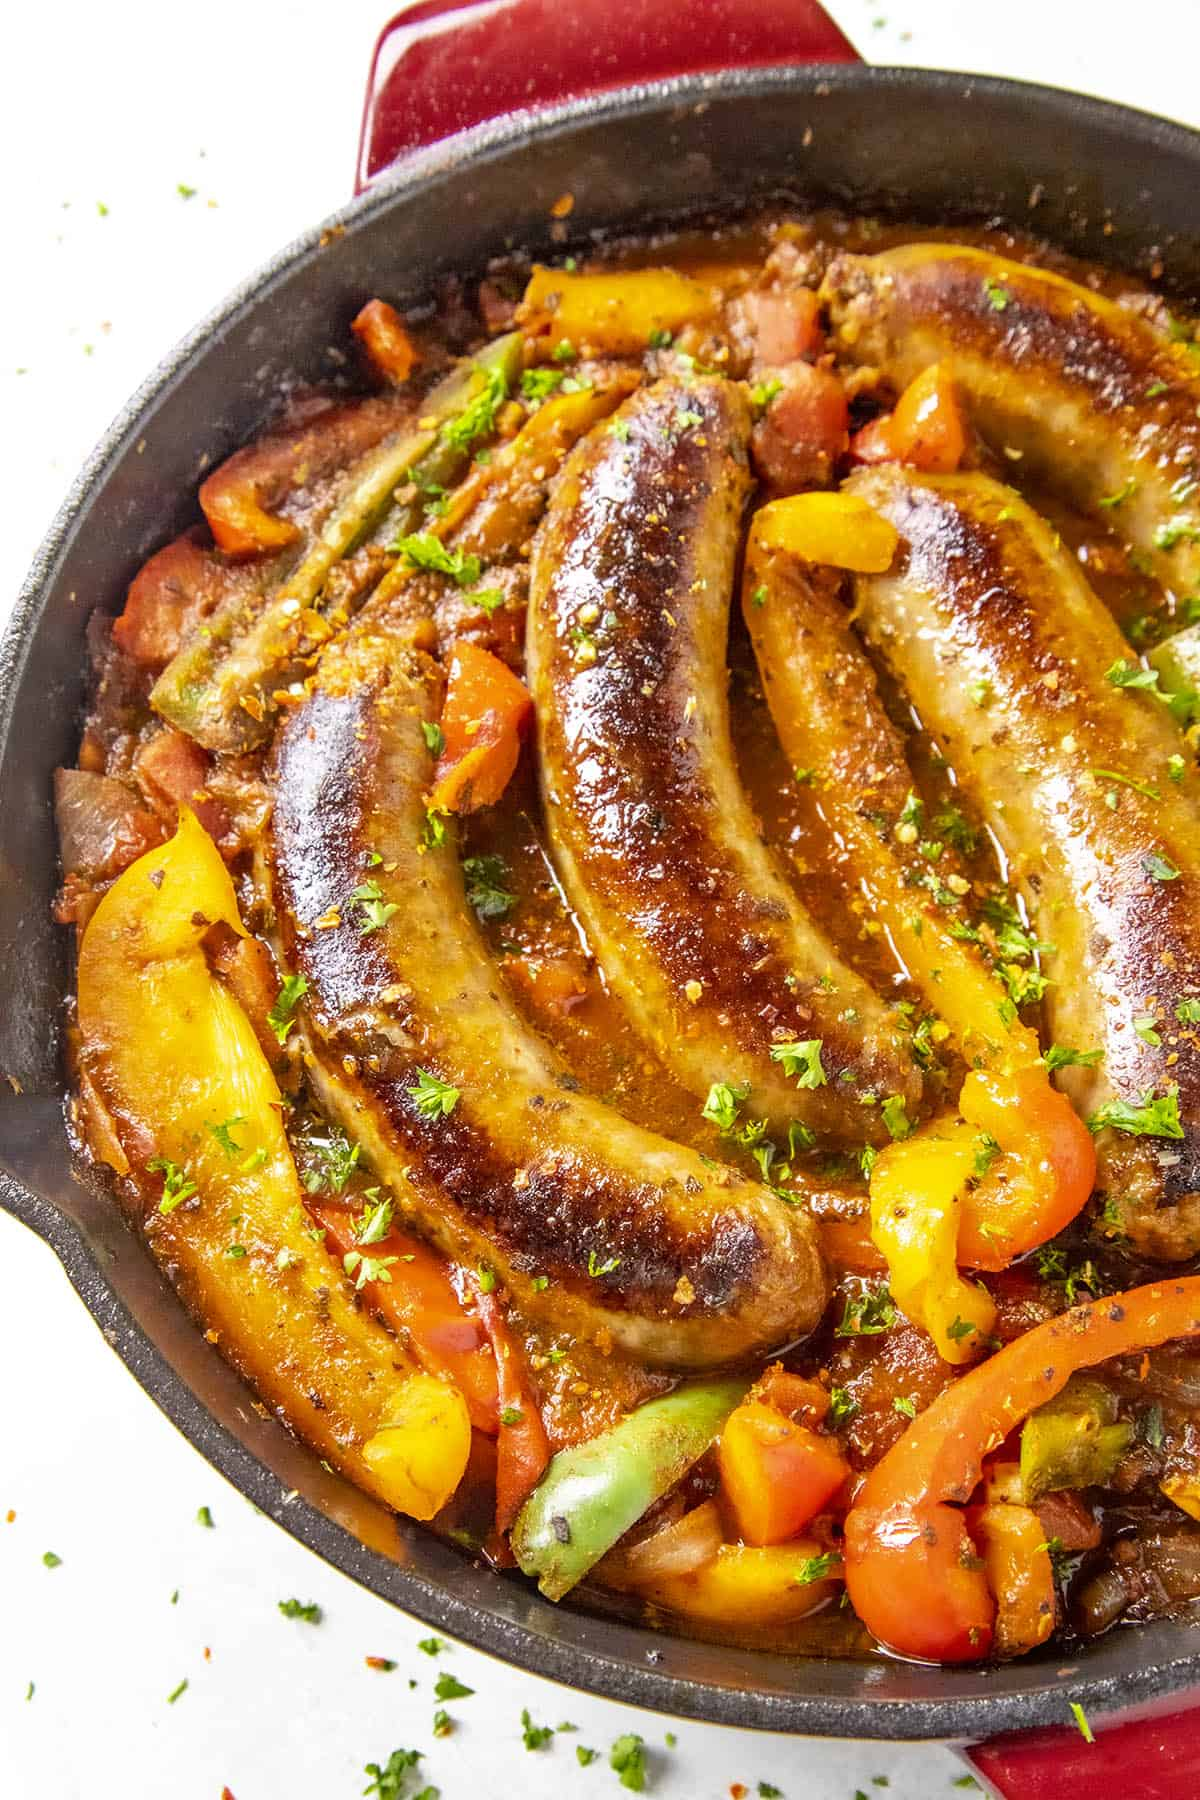 Sausage and Peppers in a hot pan with chili flakes and chopped green herbs